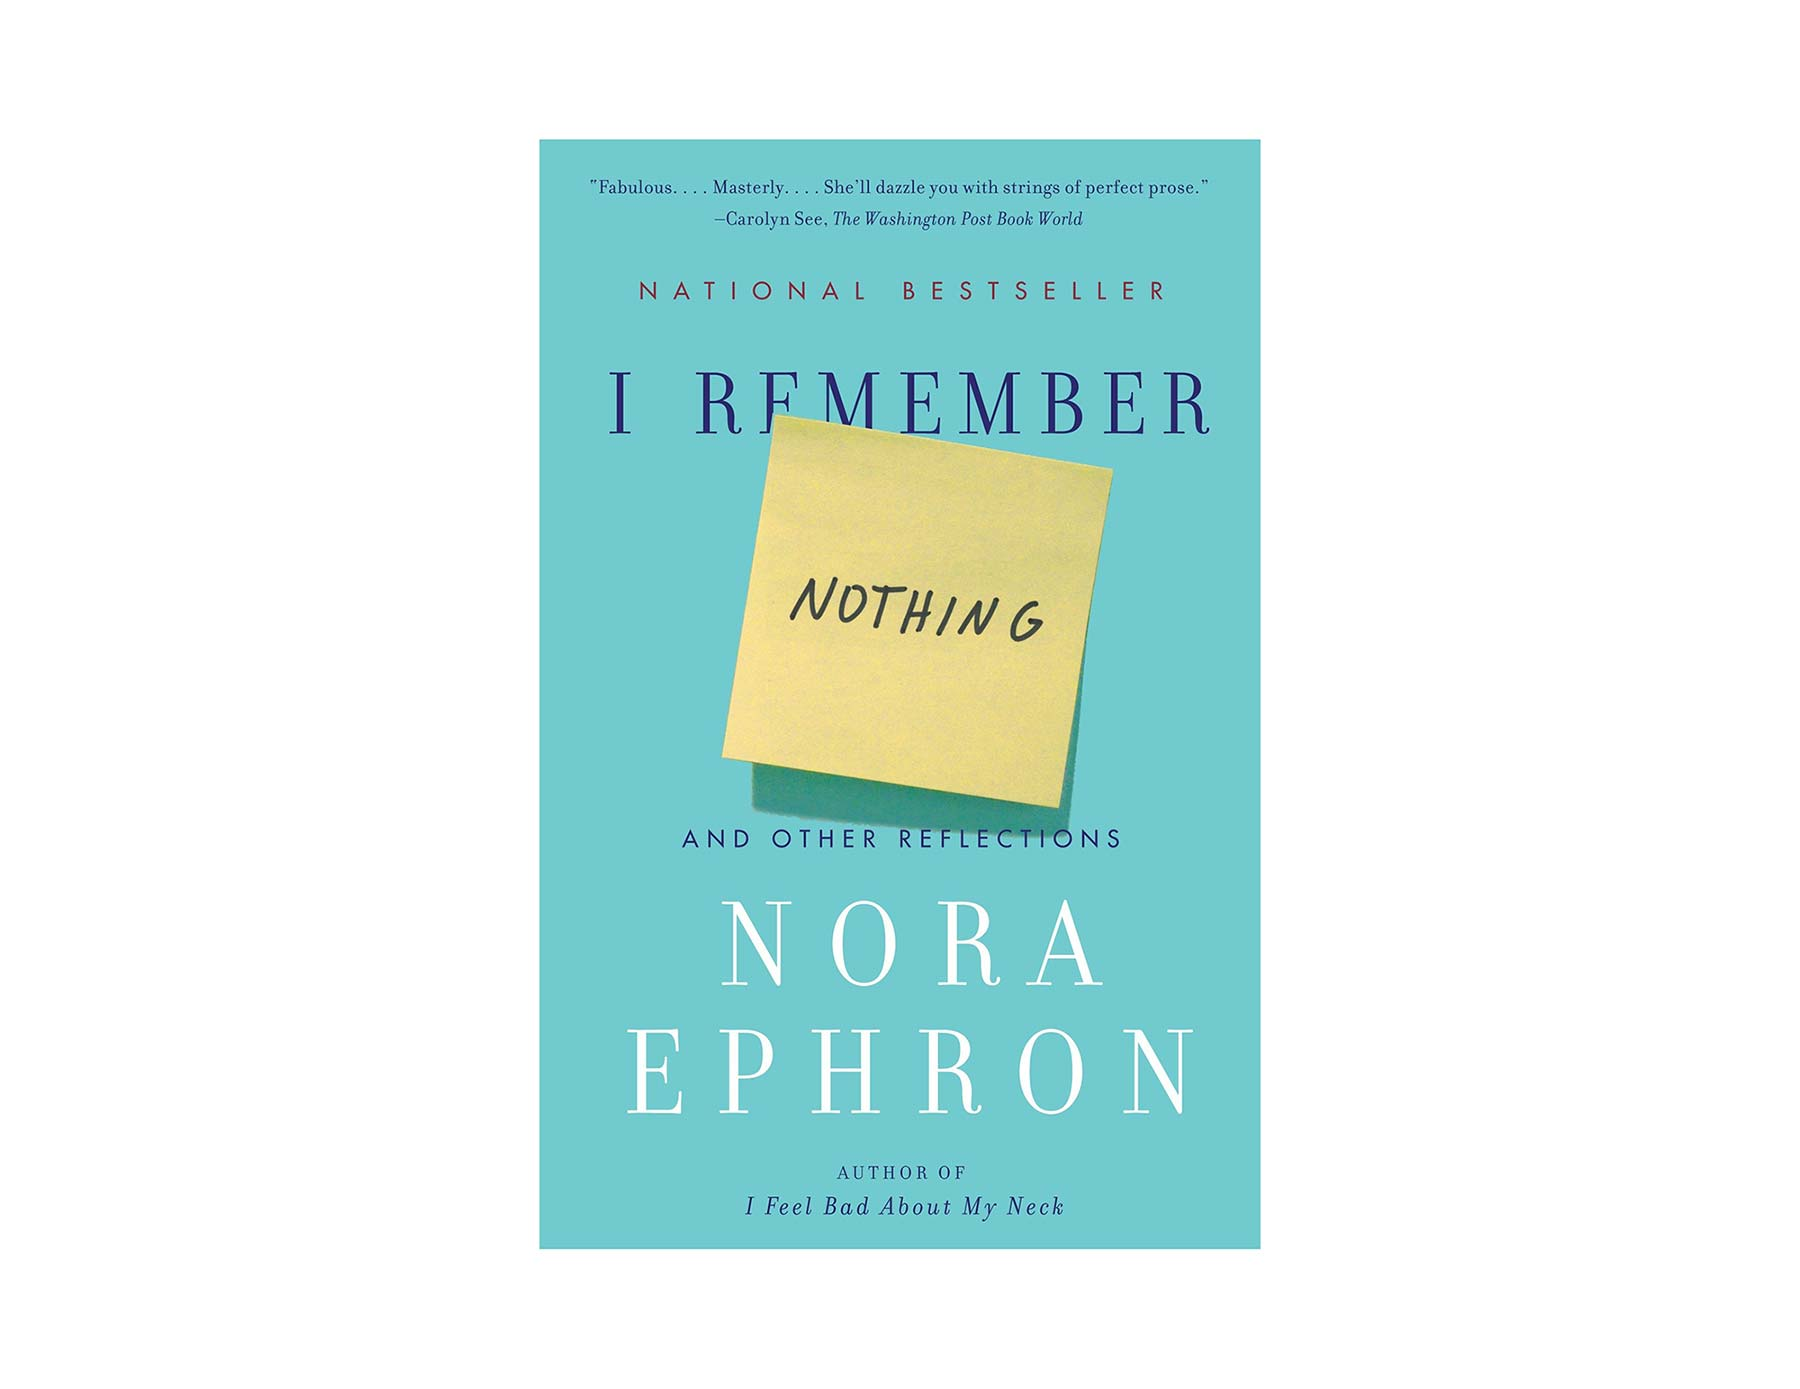 I Remember Nothing, by Nora Ephron